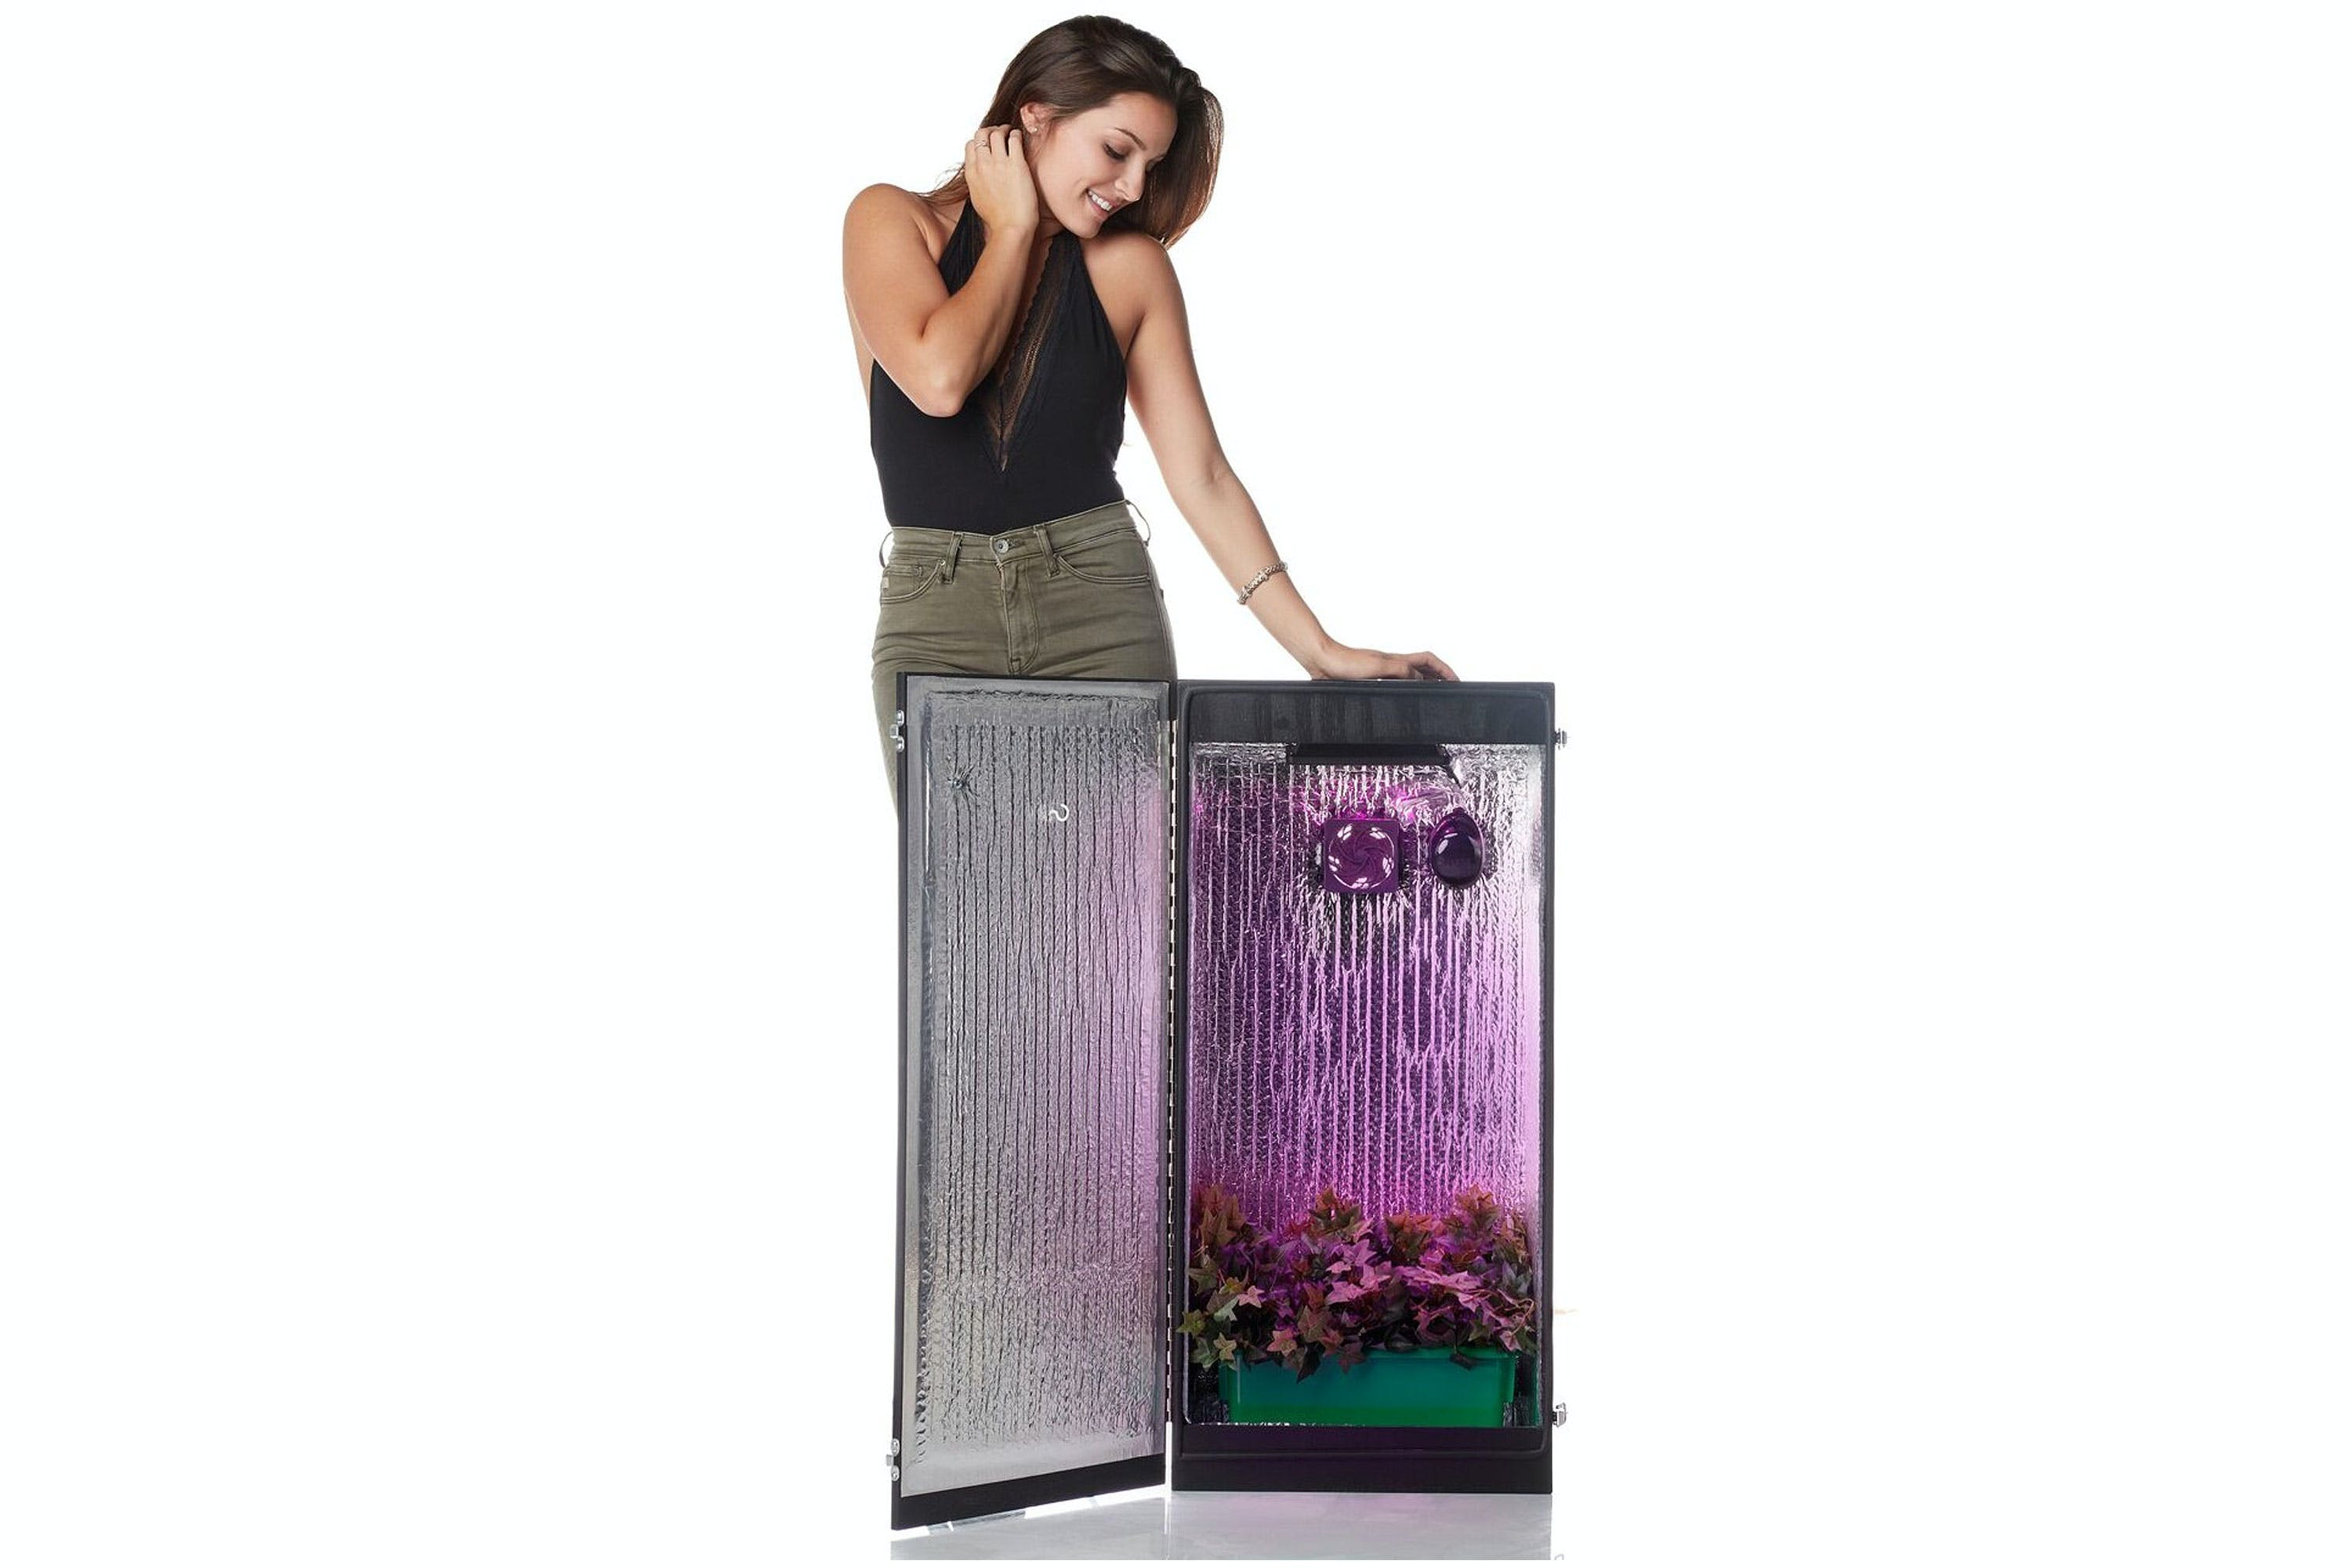 CC2 Grow Box Grow Weed Effortlessly With The Best Grow Box For Beginners